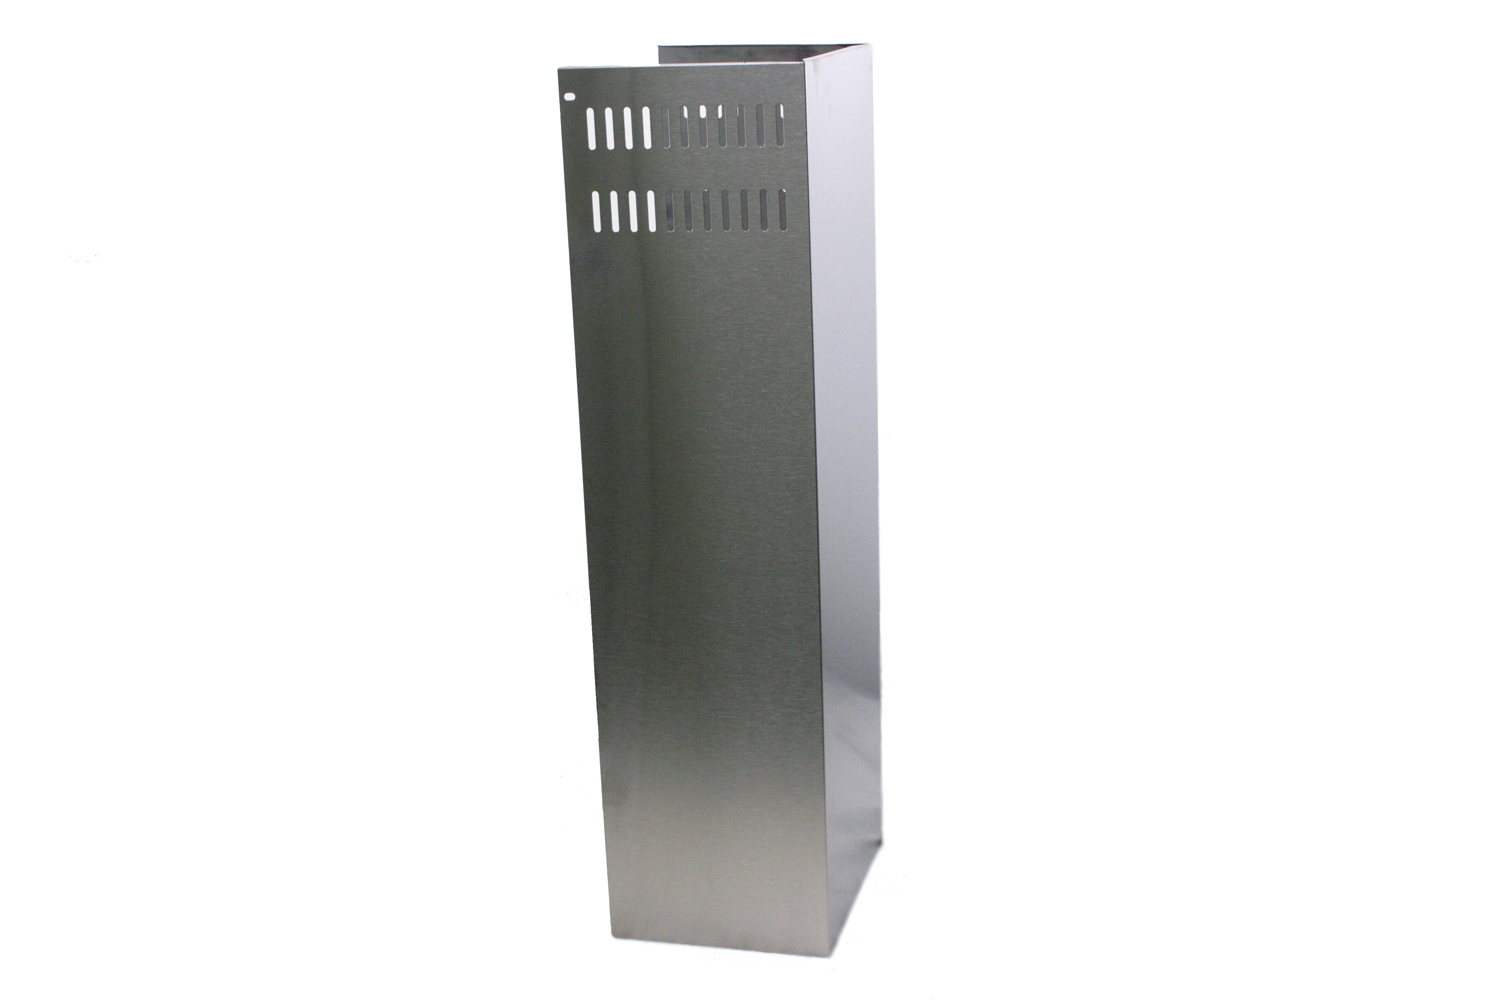 Chimney Extension Vented For Wall Mount Range Hood 63190